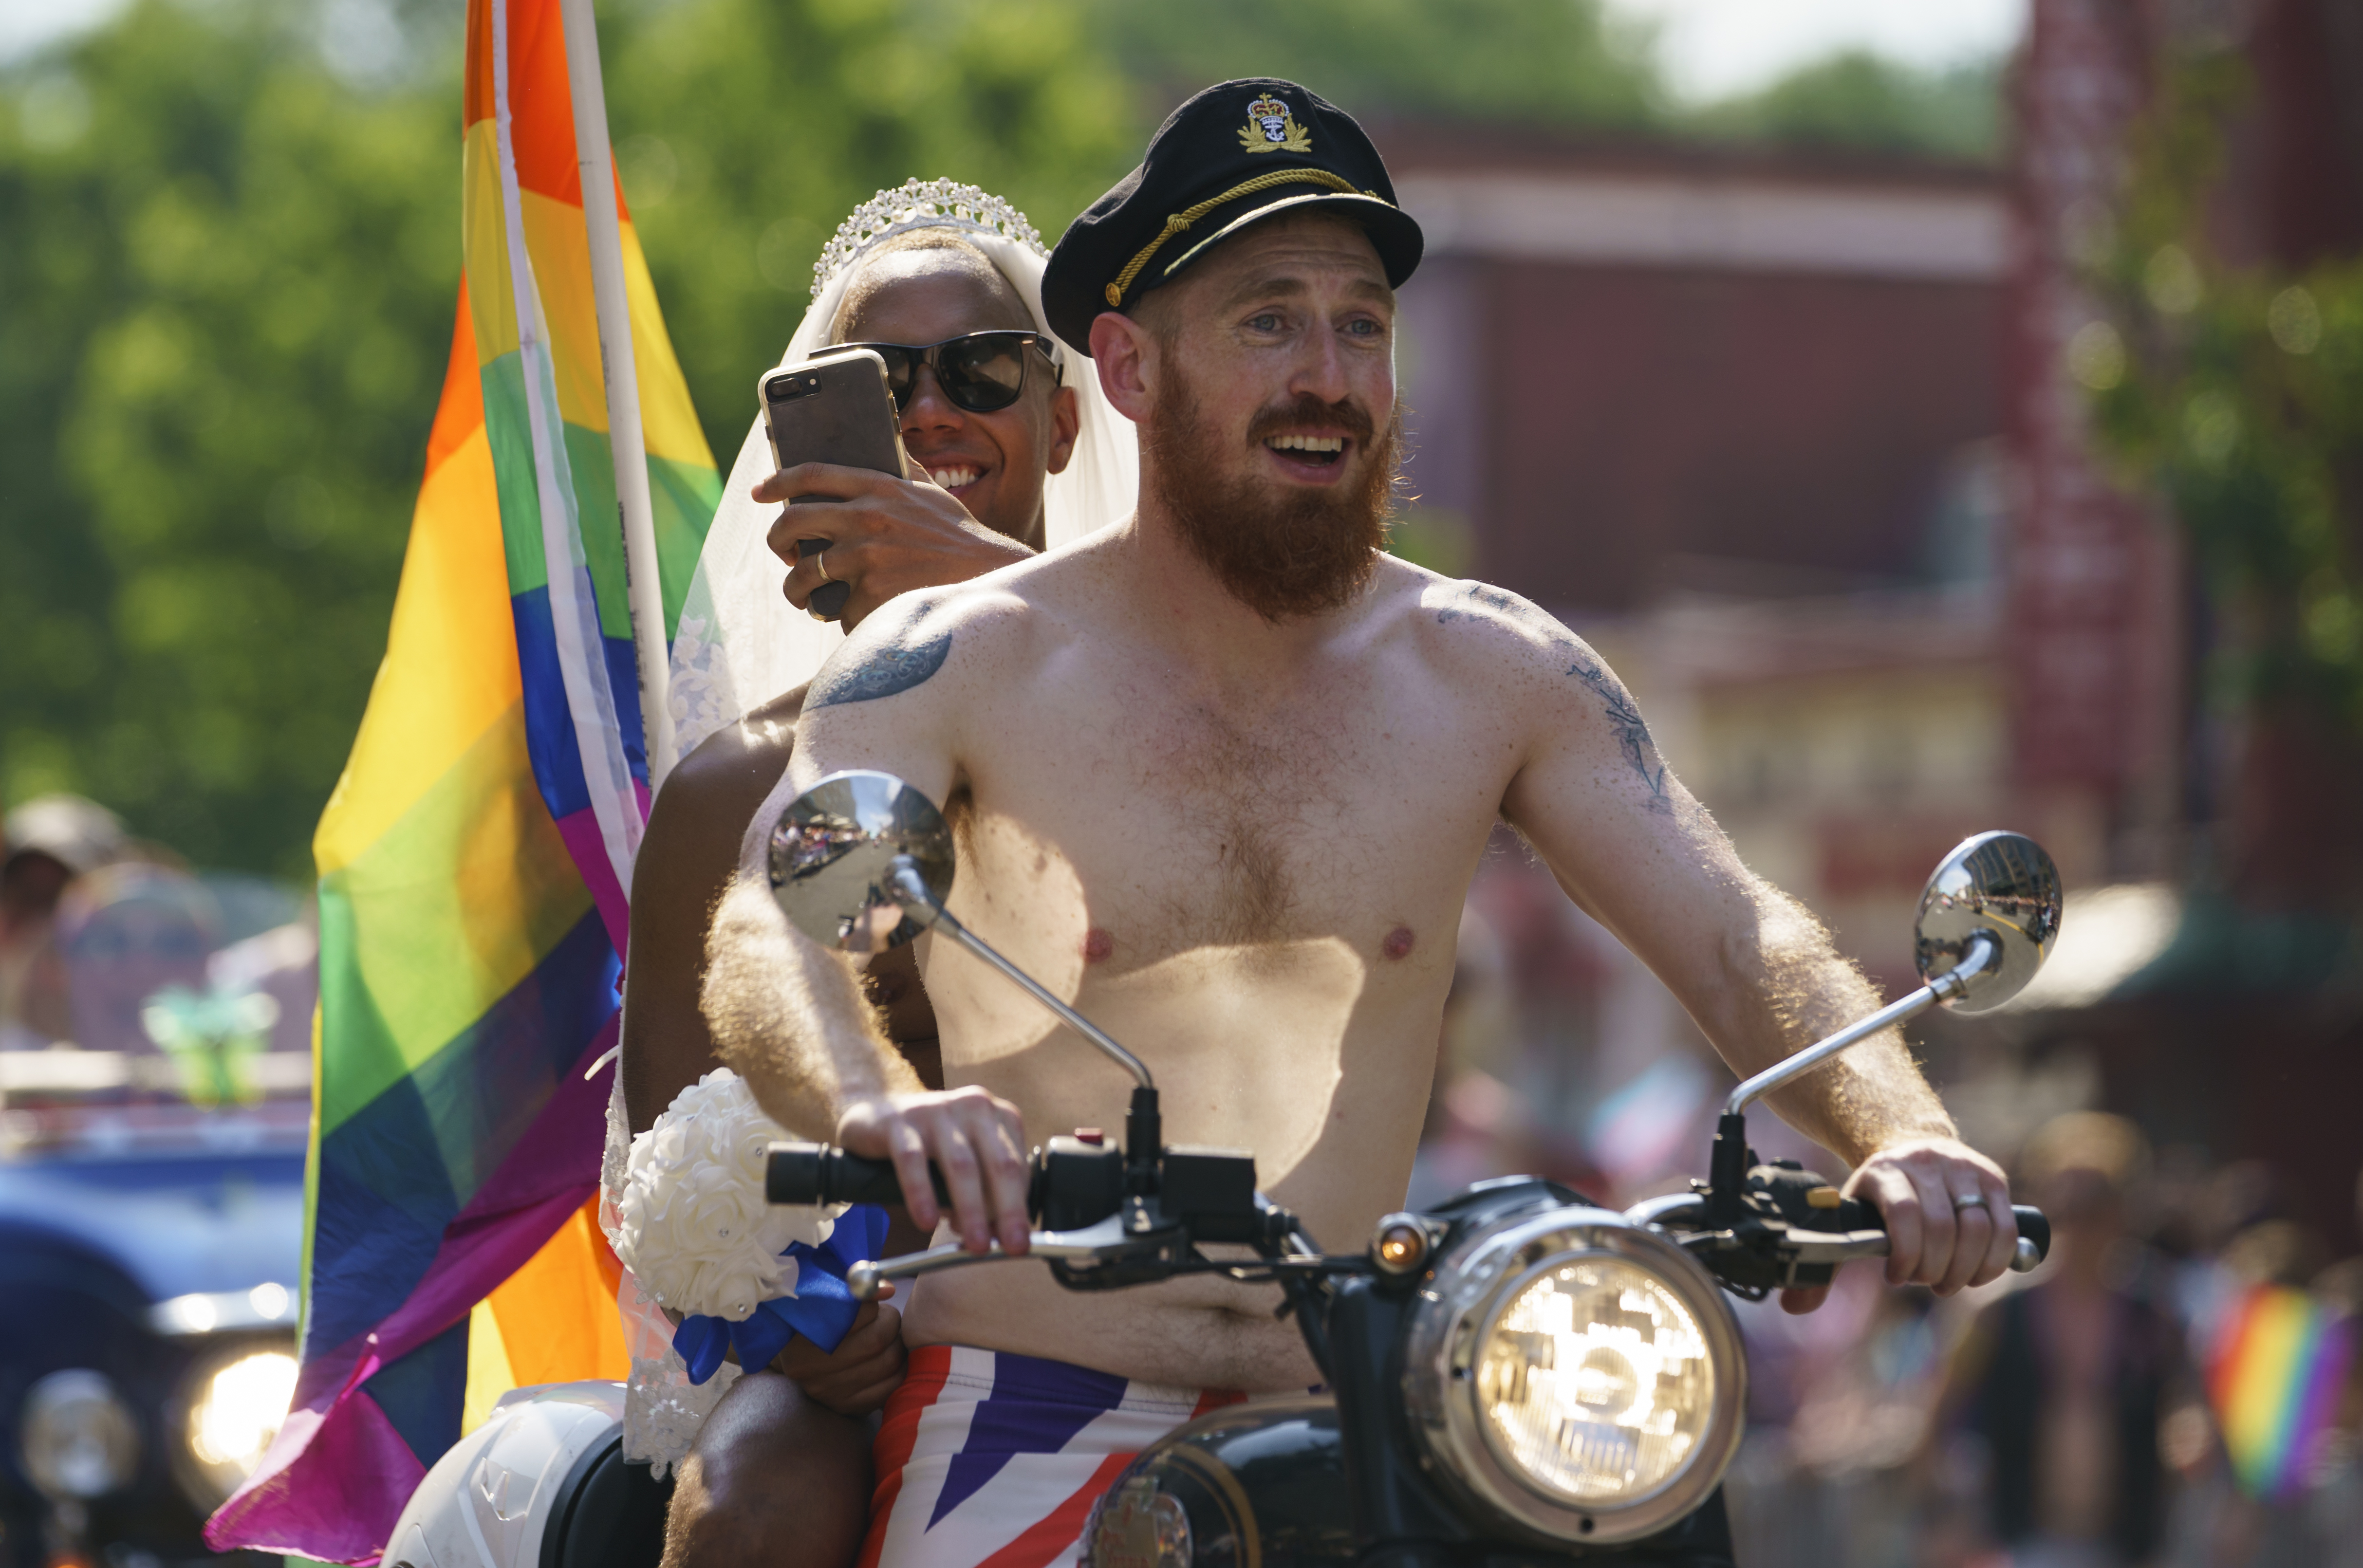 Scott Simpson, foreground, and his husband, Michael Clarke, ride with the Out Riders Women's Motorcycle Club, going as Prince Harry and Meghan Markle, in the Capital Pride Parade in Washington, June 9, 2018.